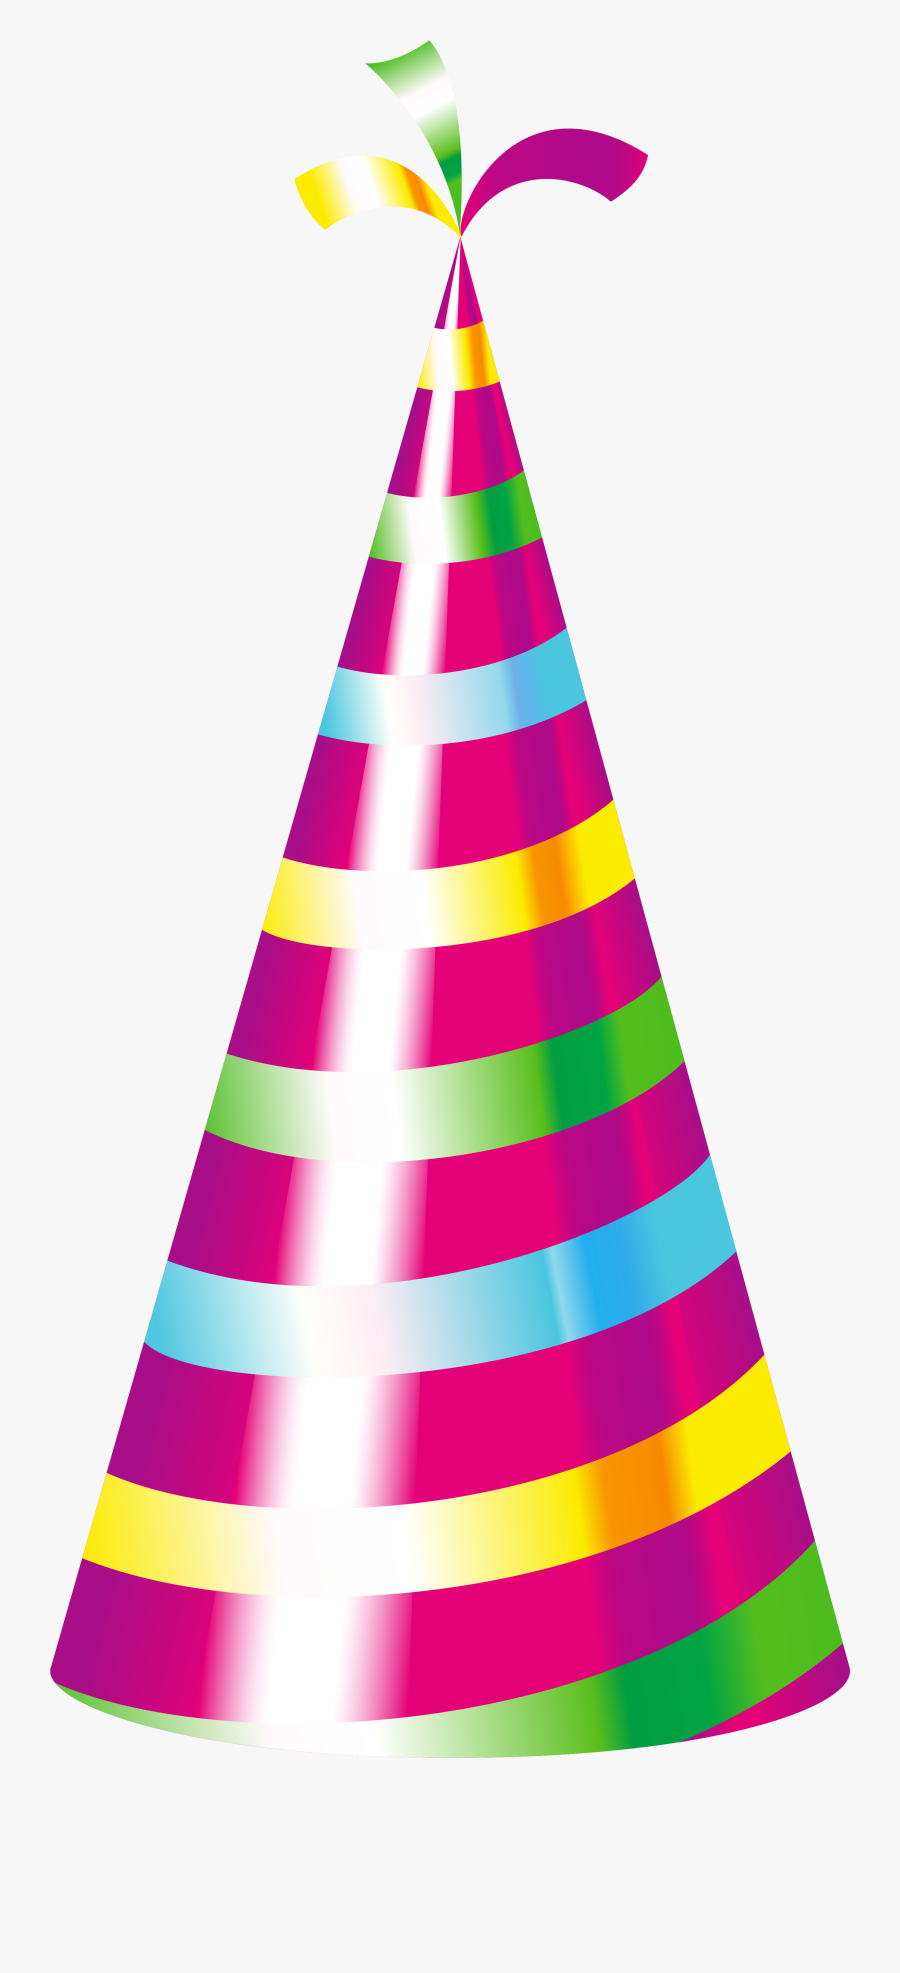 Party Hat Clipart Image Gallery Yopriceville High Quality - Birthday Hat Clipart Png, Transparent Clipart